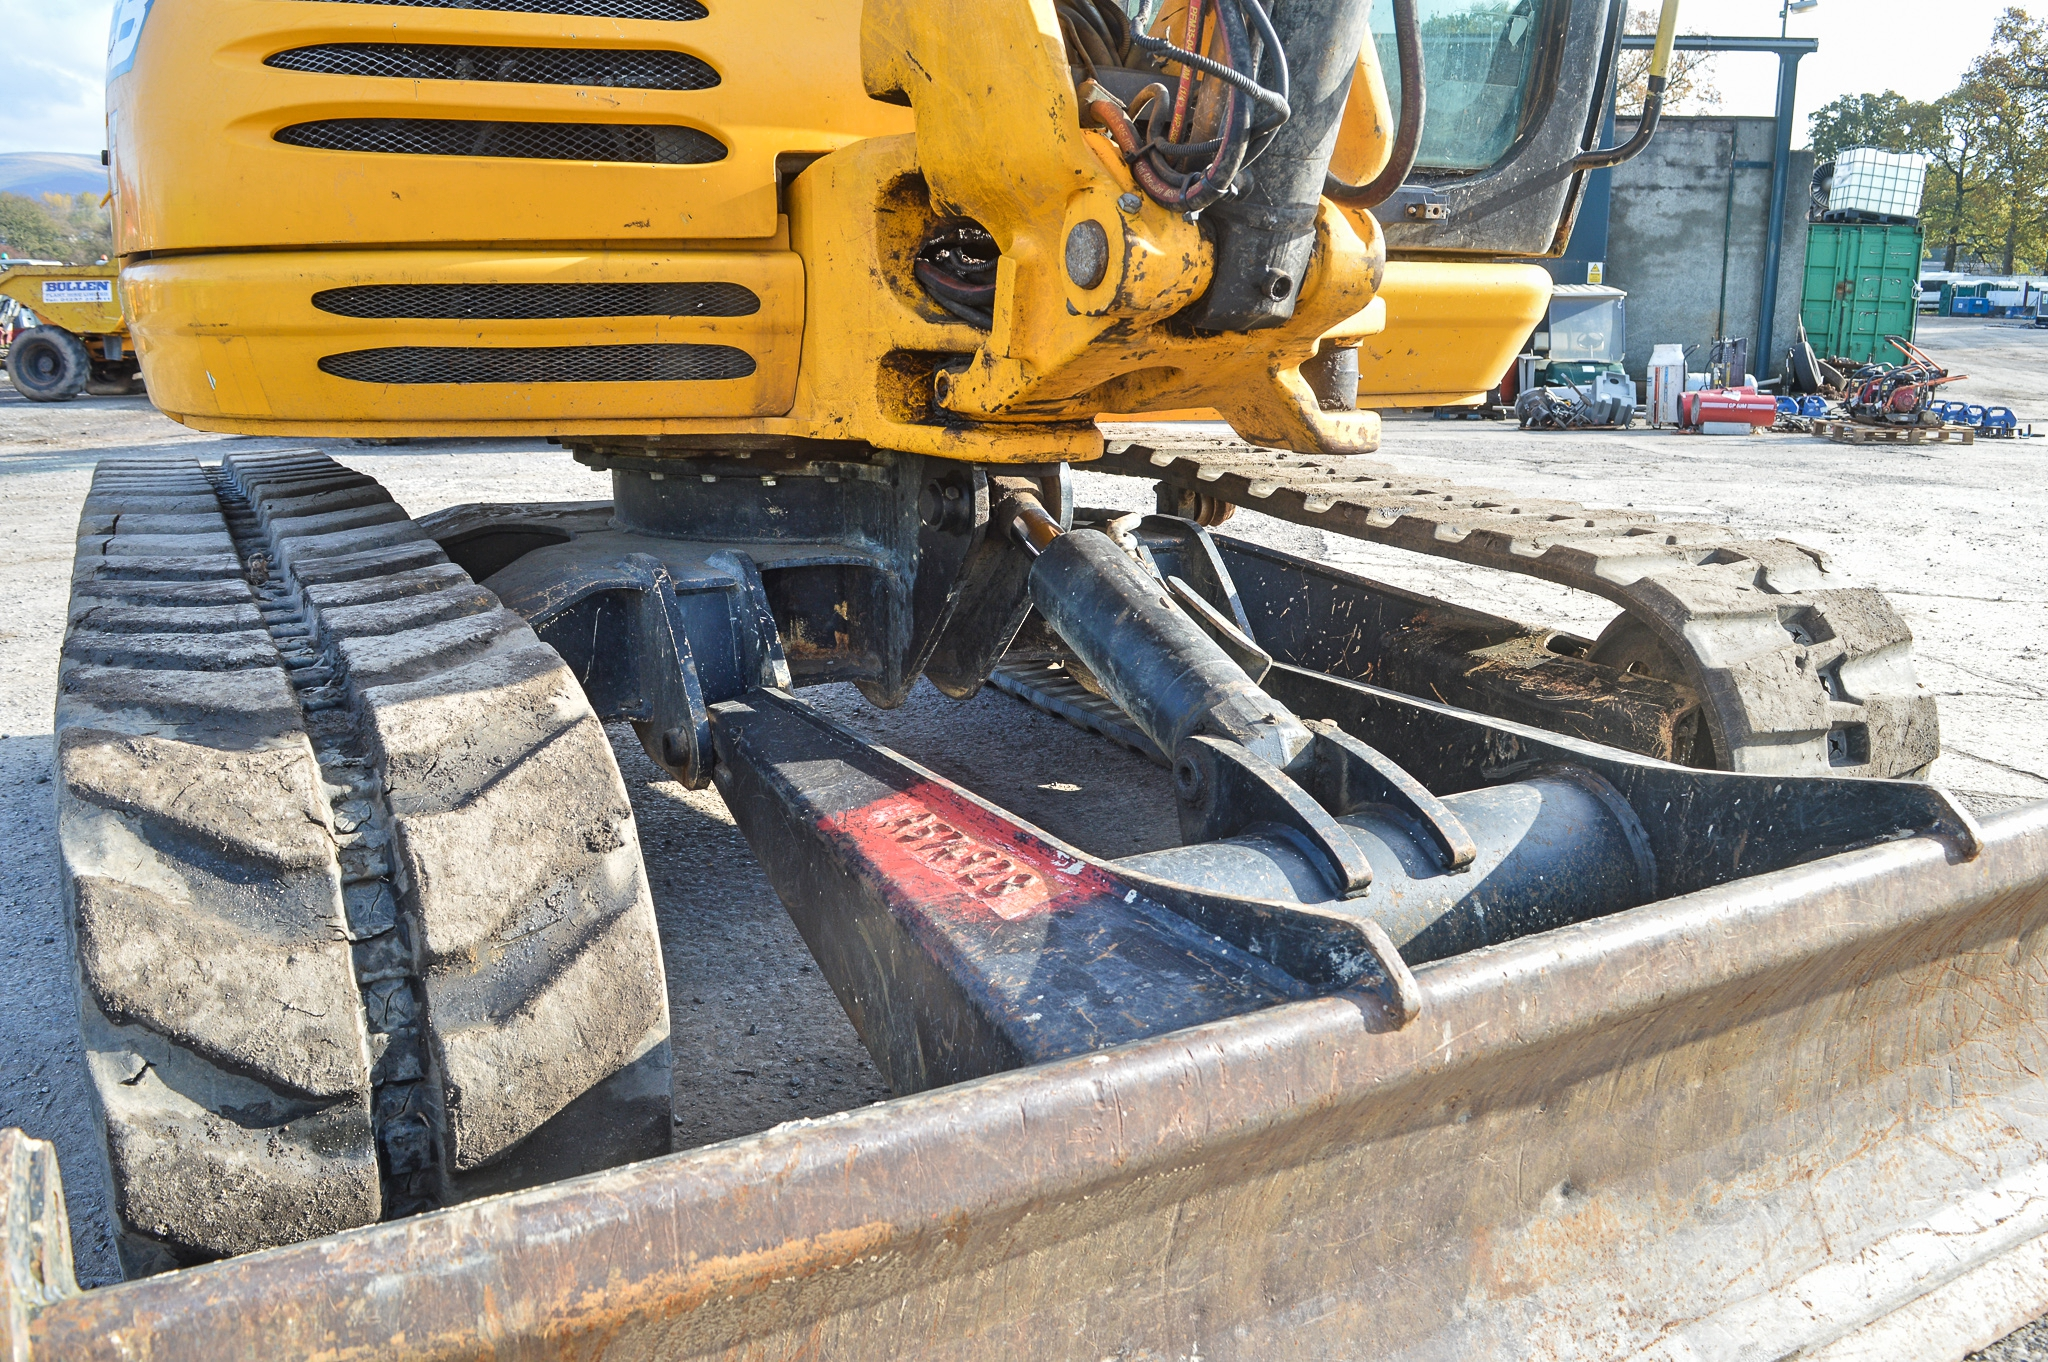 Lot 6 - JCB 8085 ZTS 8.5 tonne rubber tracked midi excavator Year: 2012 S/N: 1072502 Recorded Hours: 3250